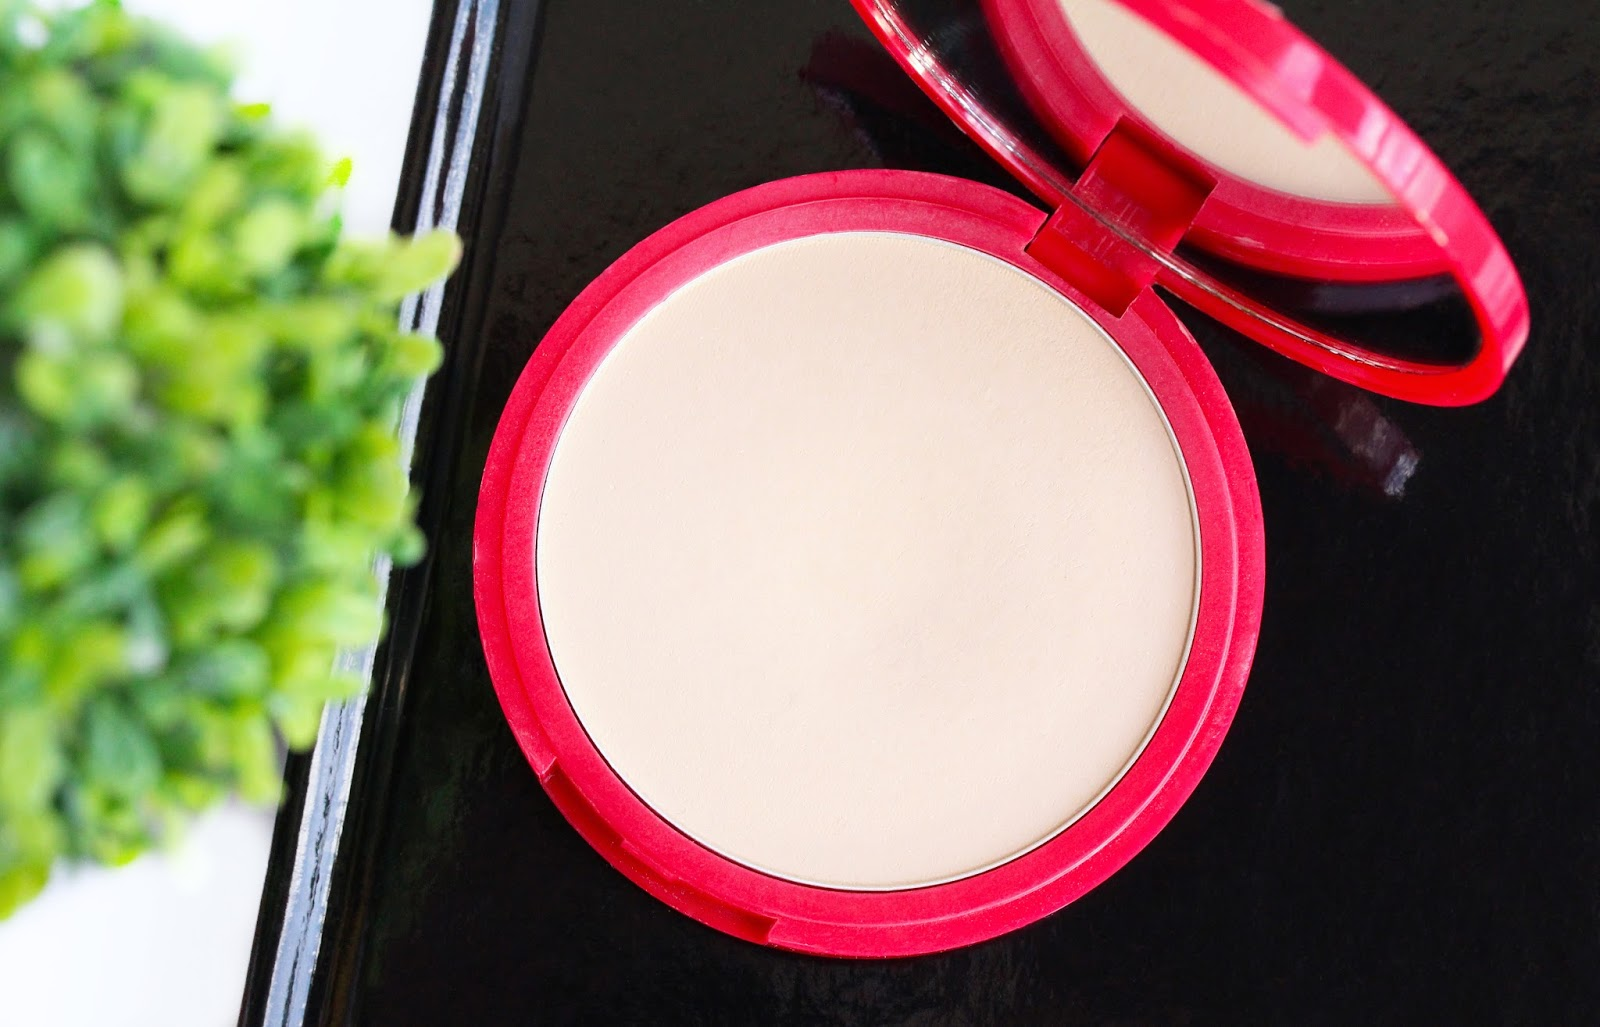 Bourjois Healthy Balance Powder in 52 Vanilla